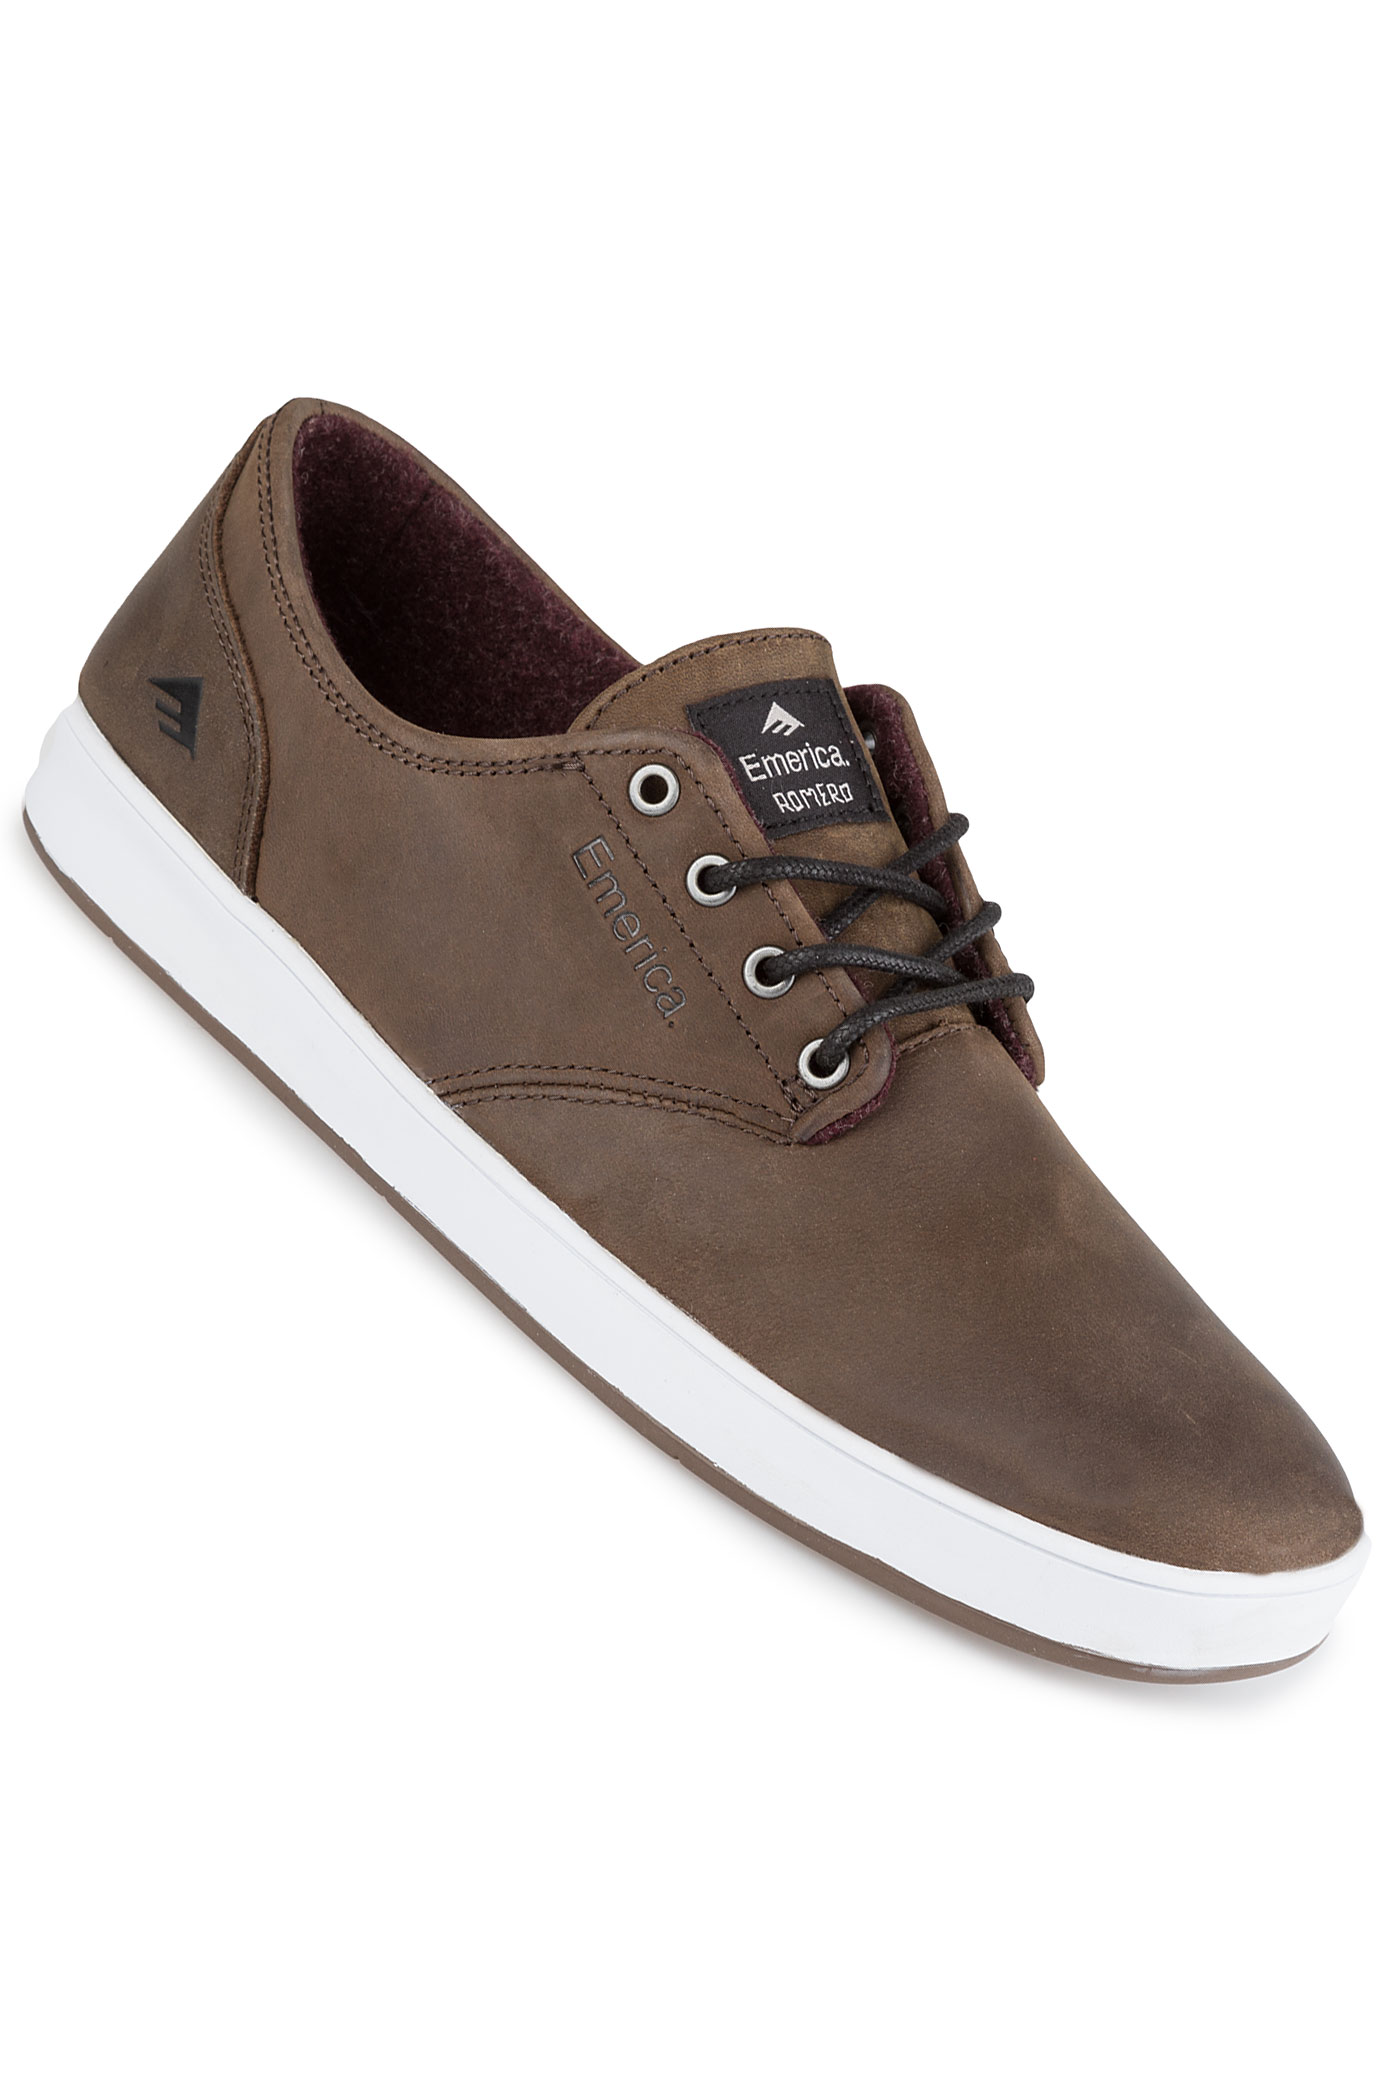 Laced Grey The Romero Chaussurebrown Emerica White 34qLA5jR